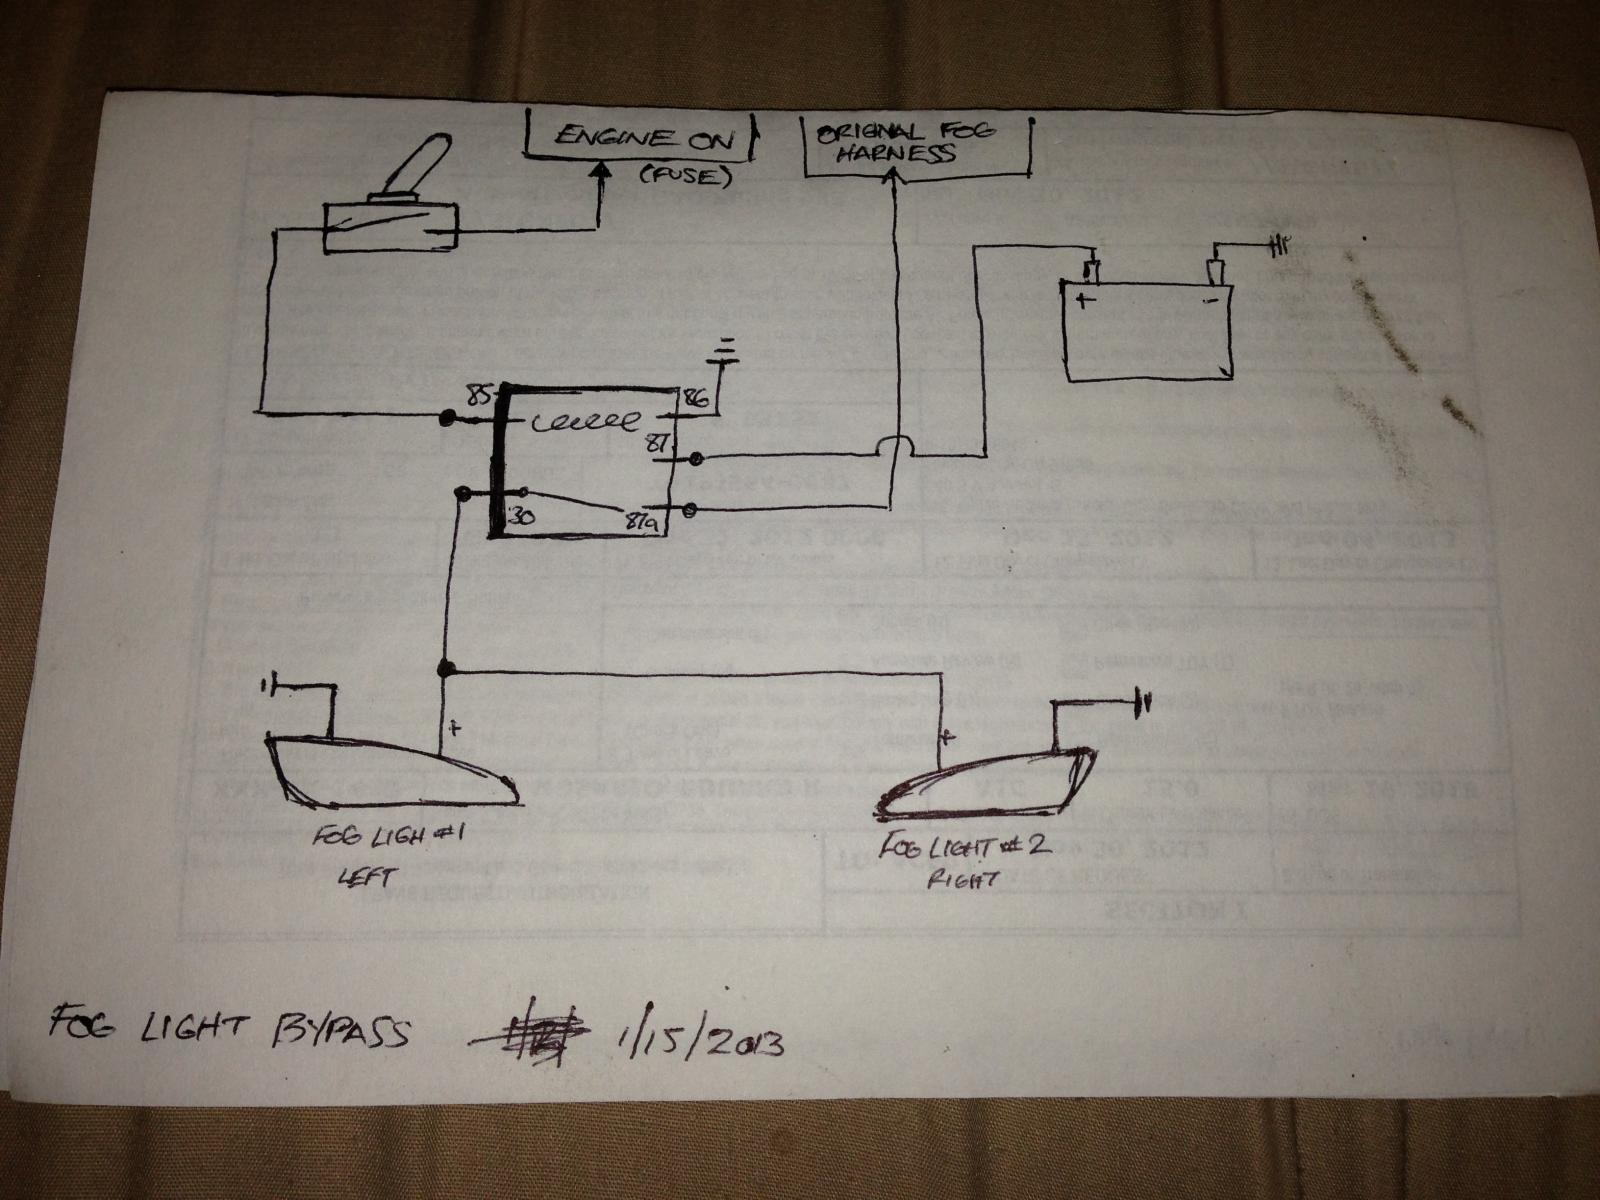 hight resolution of simple wiring diagram to bypass foglights works w o headlights or w 9003 headlight wire diagram headlight wire diagram